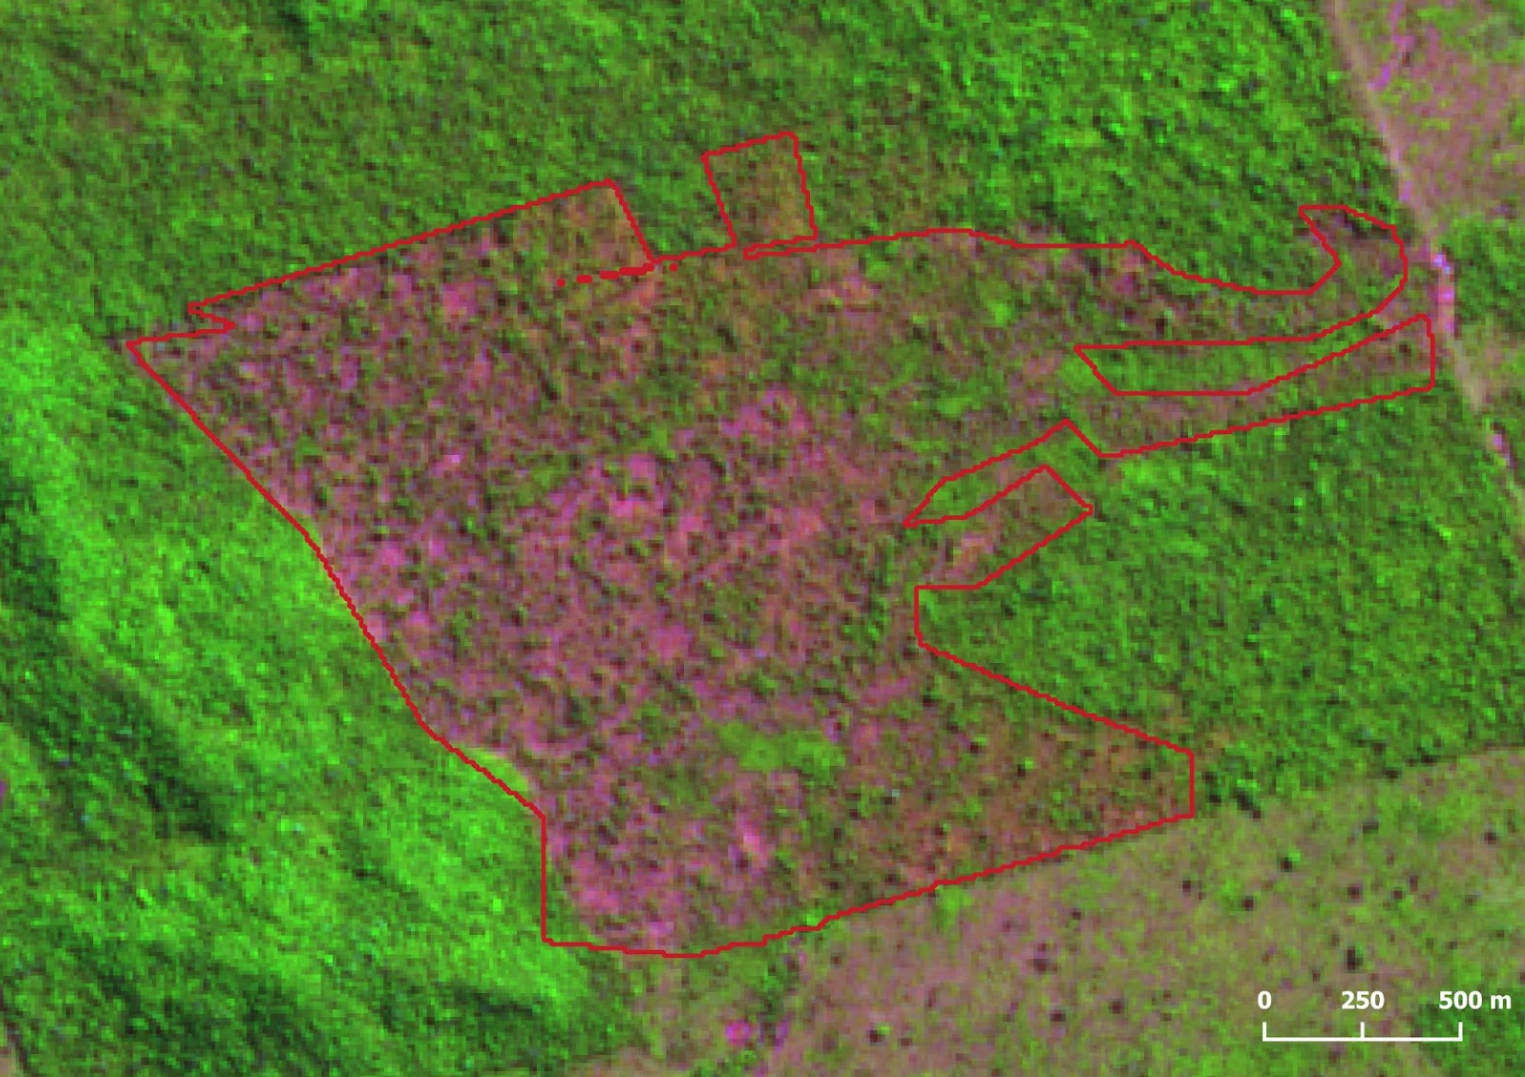 Desmatamento Altamira Julho2021 1 - Deforestation in the Brazilian Amazon reached 2,095 km² in July, and the last 12 months cumulative is the highest in 10 years